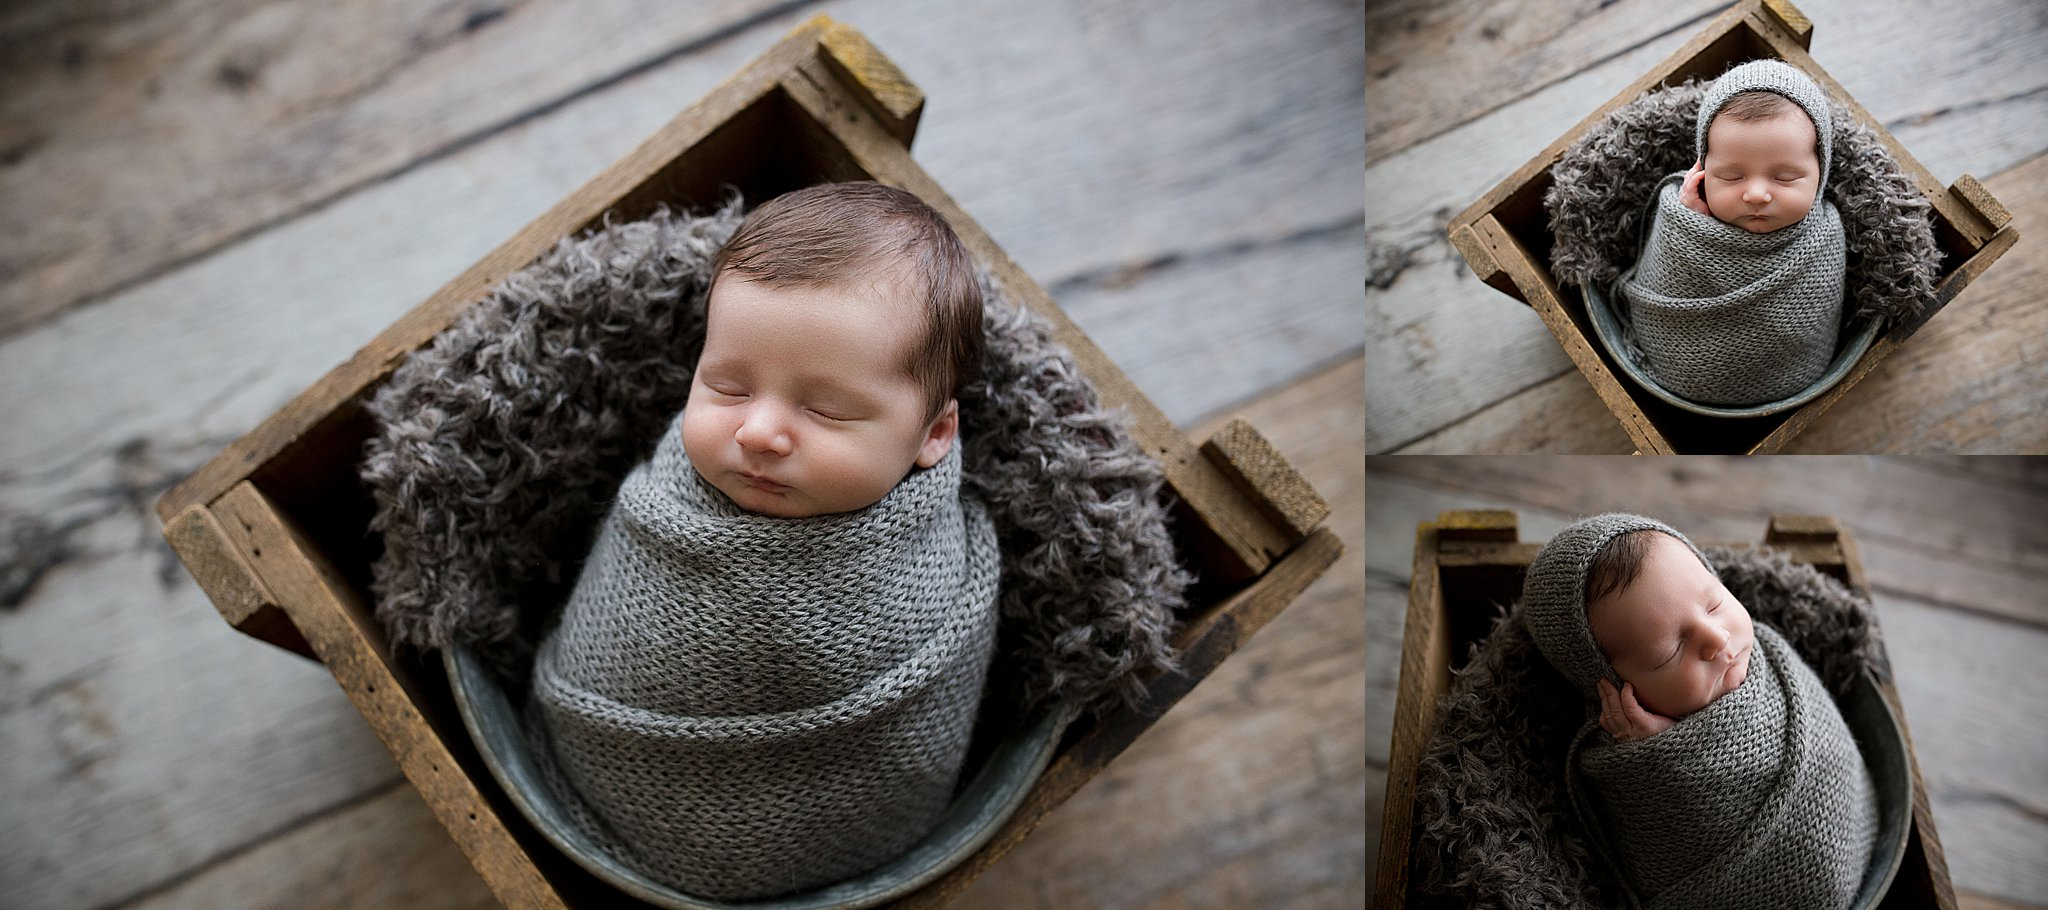 Newborn baby boy sleeping and wrapped in gray during a newborn photo session with Laura Anne Photography in Cedar Rapids, Iowa.